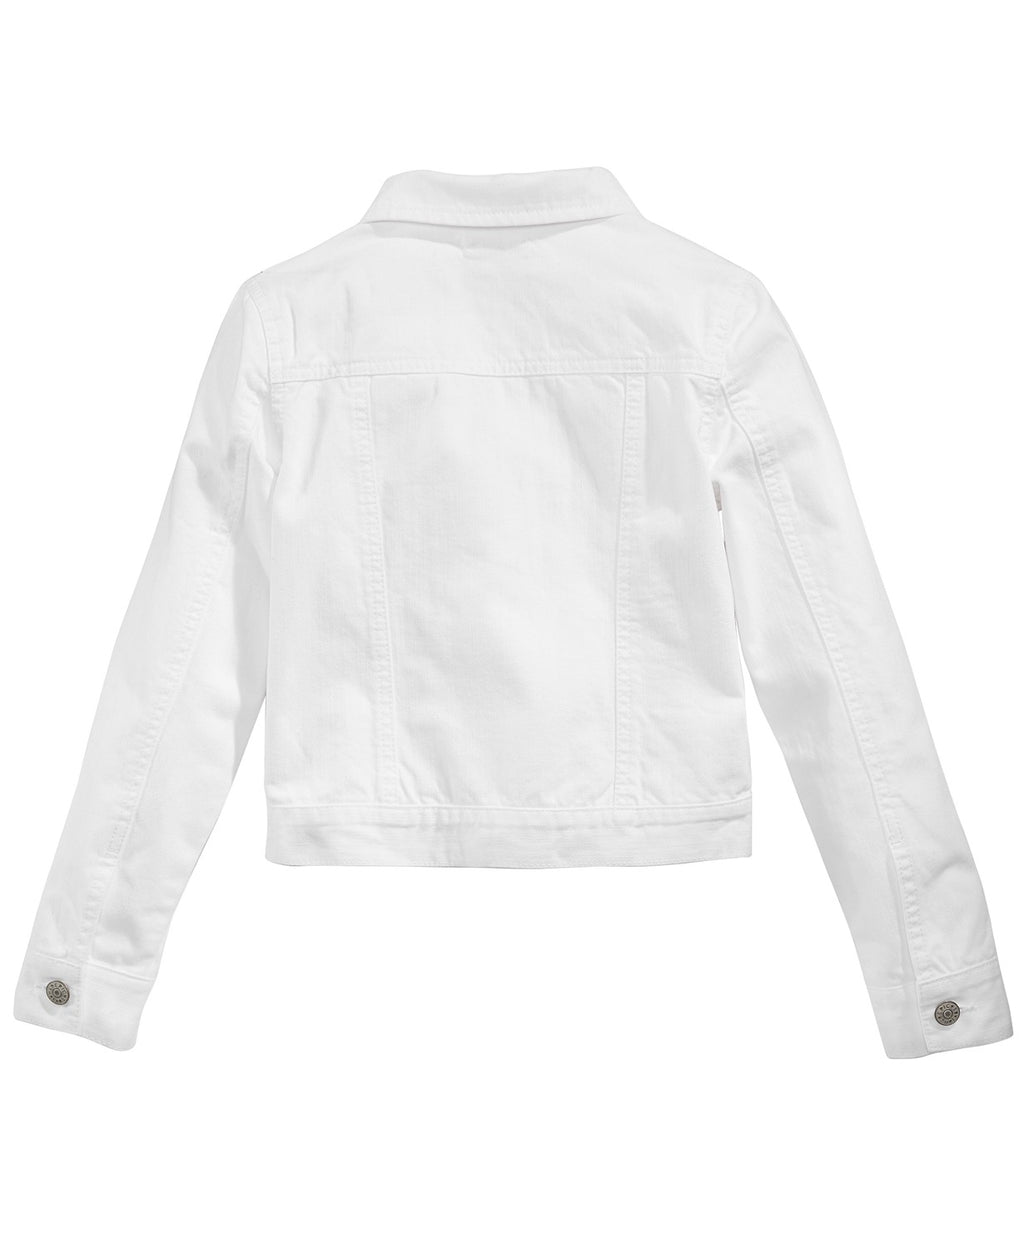 Kids Custom White Denim Jacket